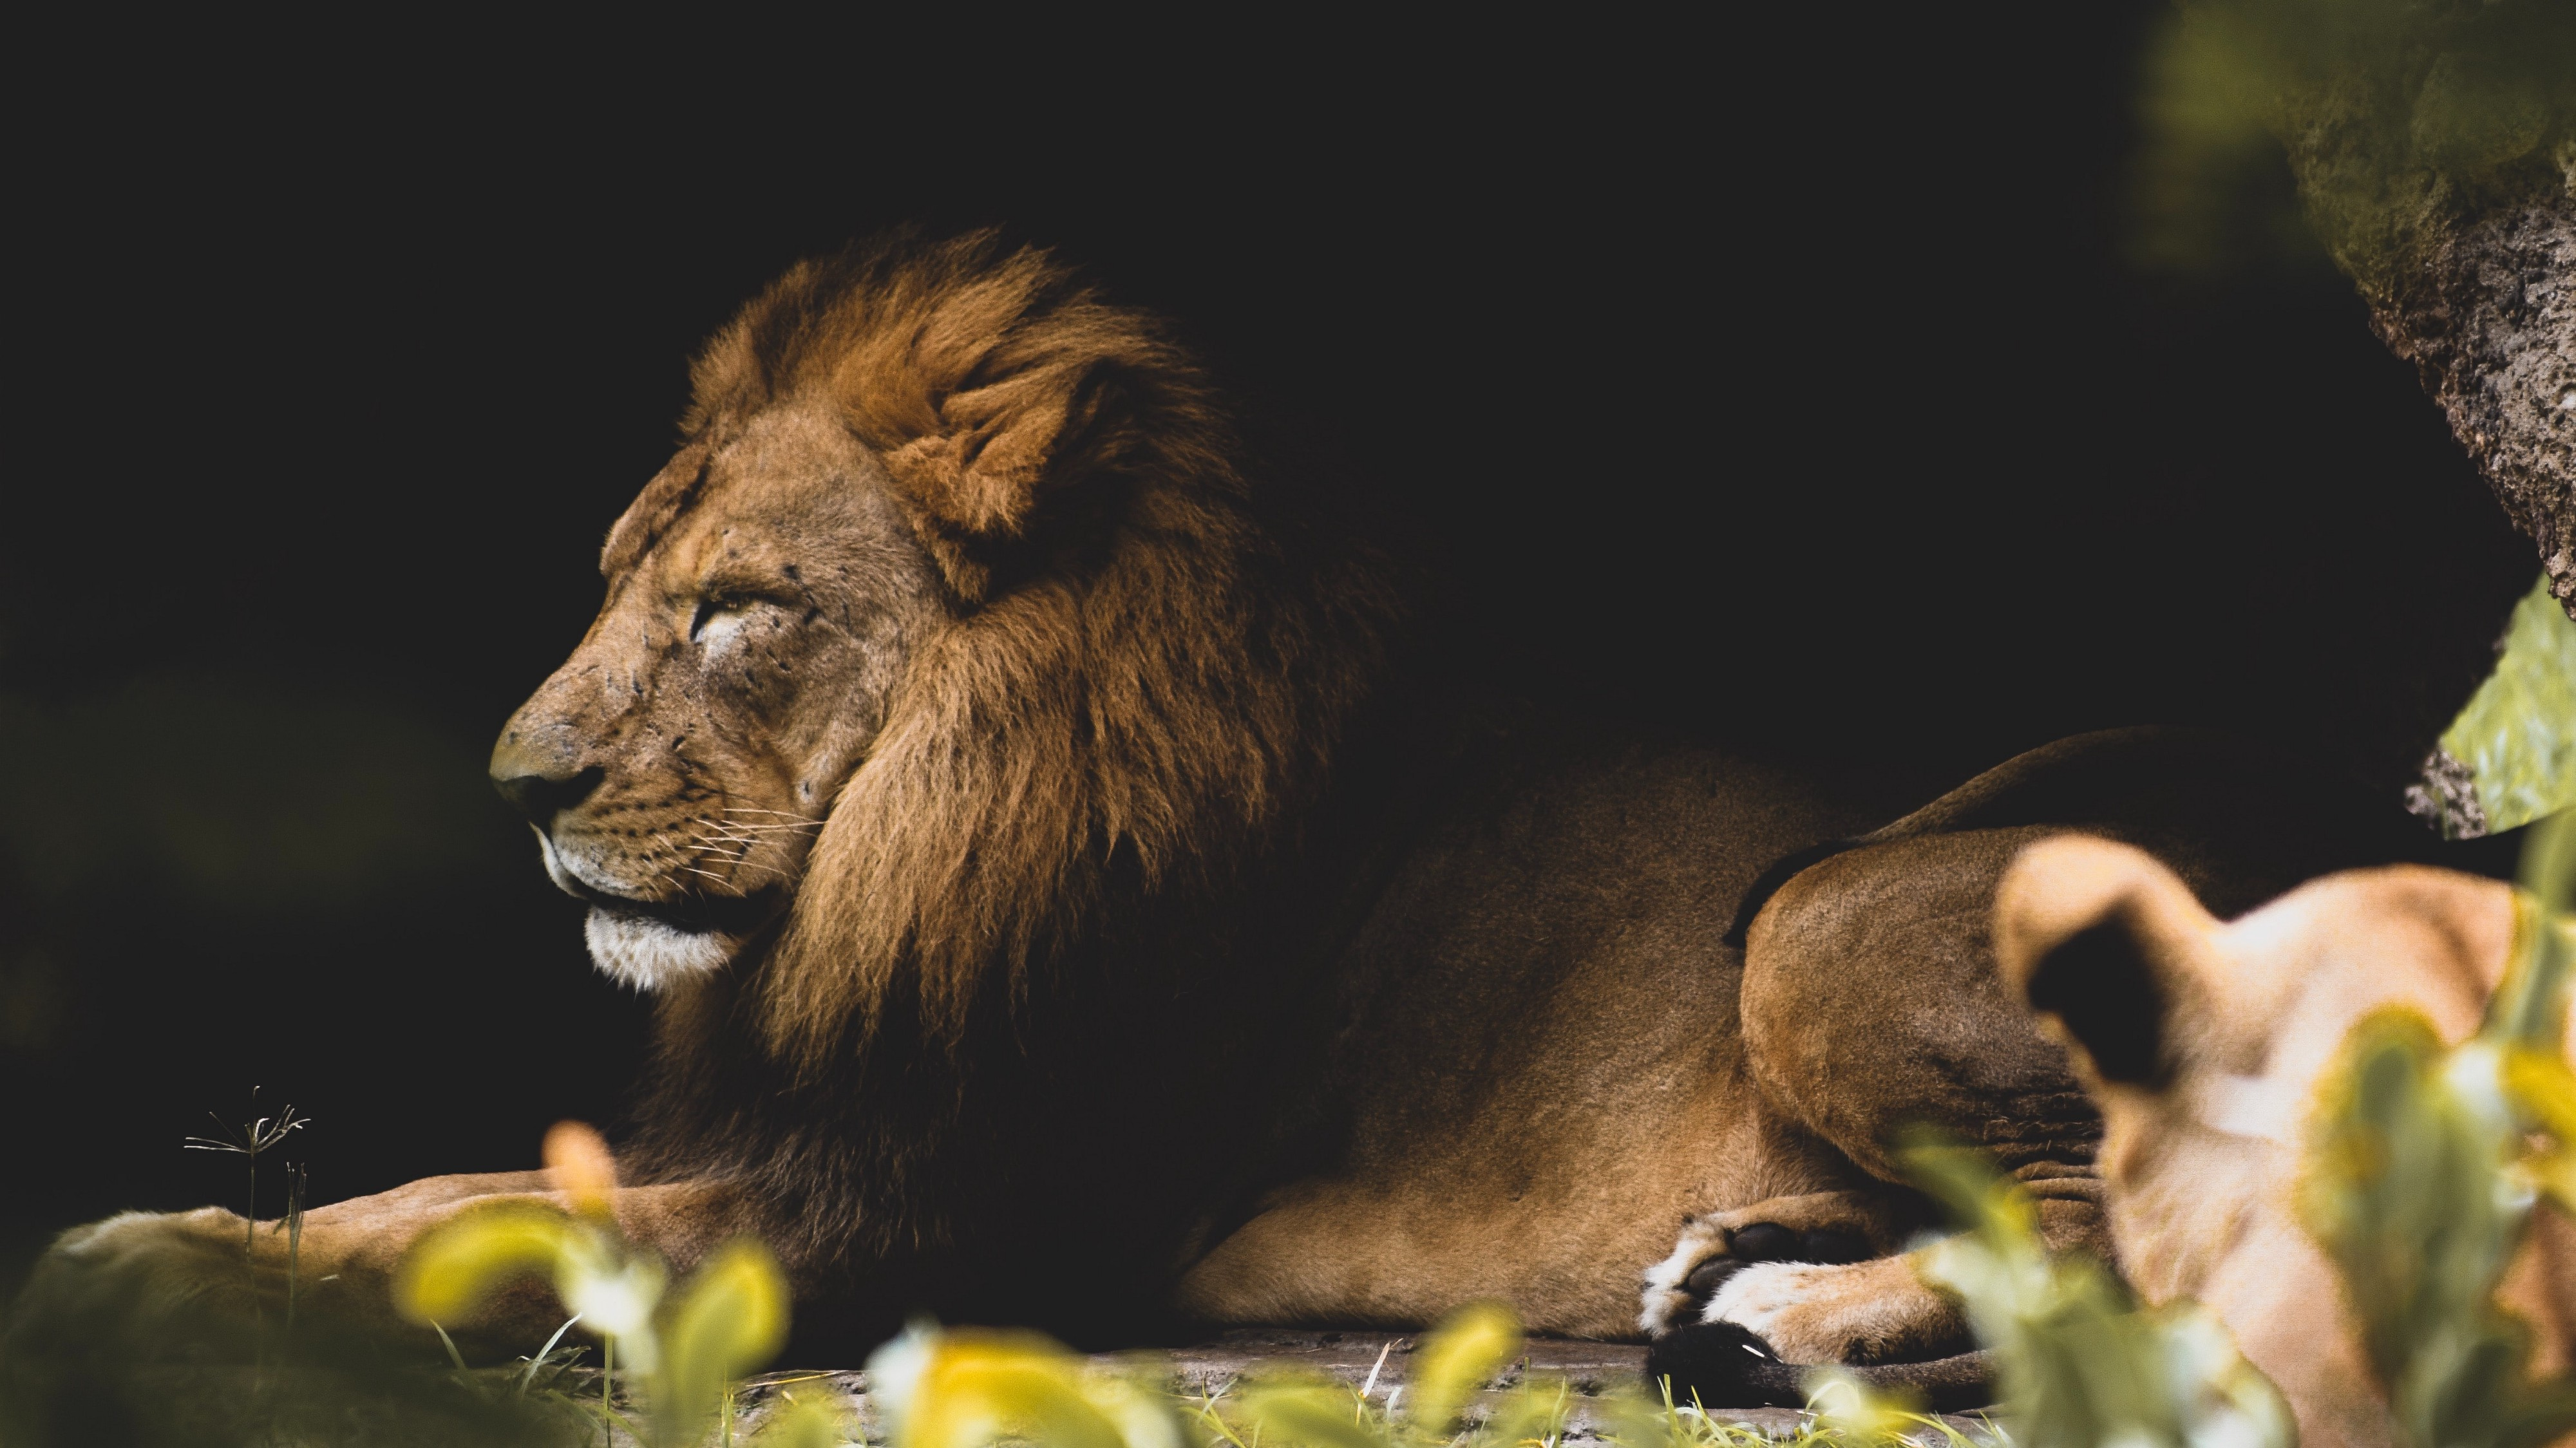 A stunning photograph of a large male lion reclining in the shadows and looking off into the distance